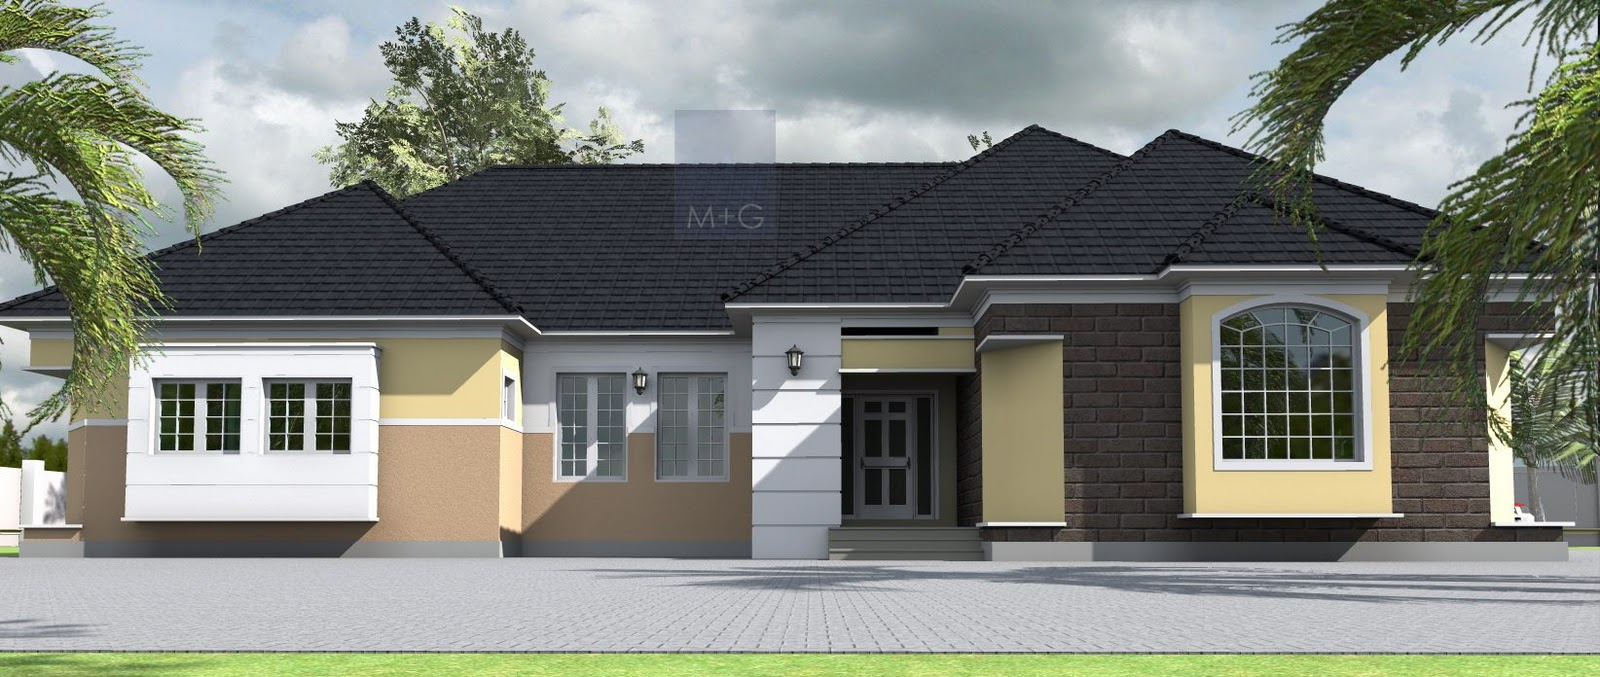 House plans and design architectural designs for 4 for 4 bedroom bungalow house designs